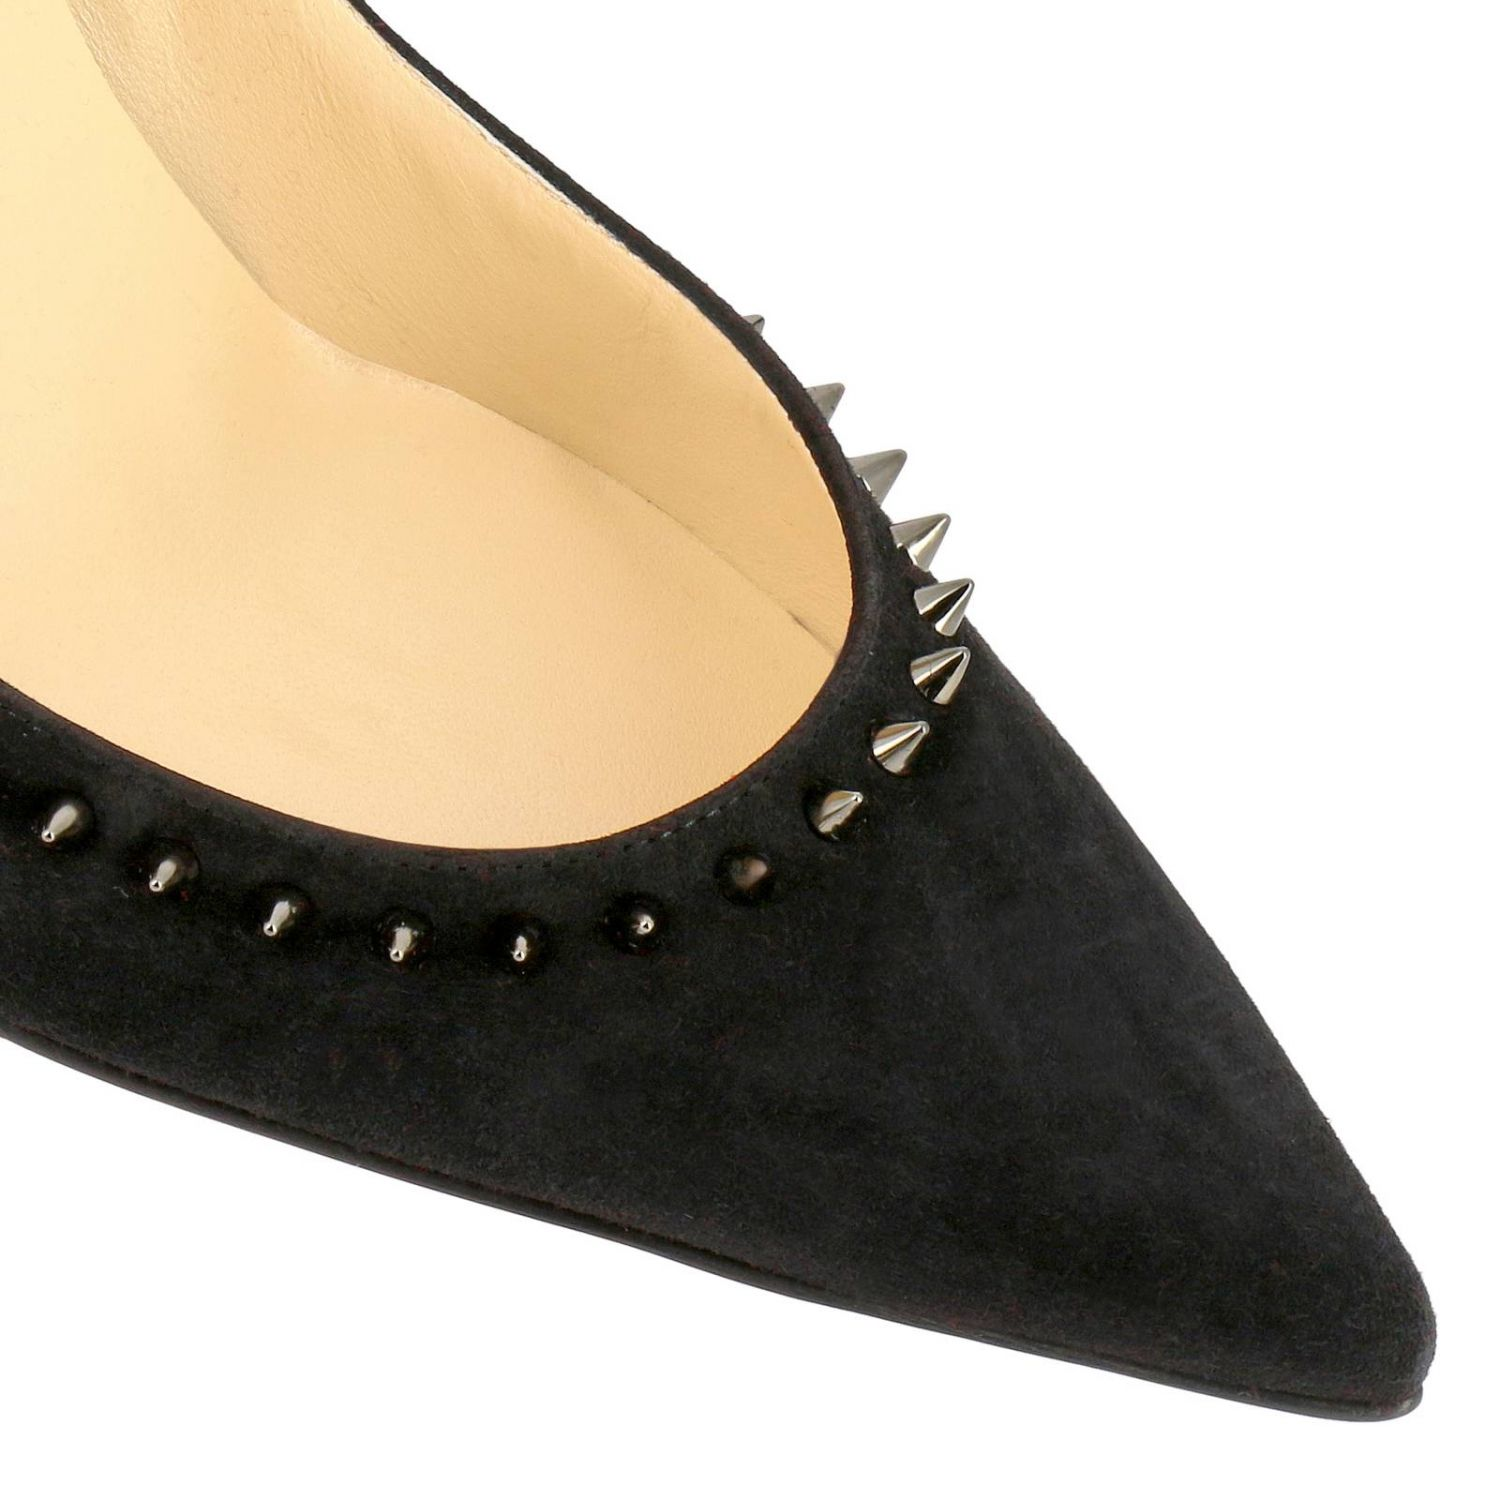 Pumps Christian Louboutin: Angelina Christian Louboutin pumps in suede with studs black 3